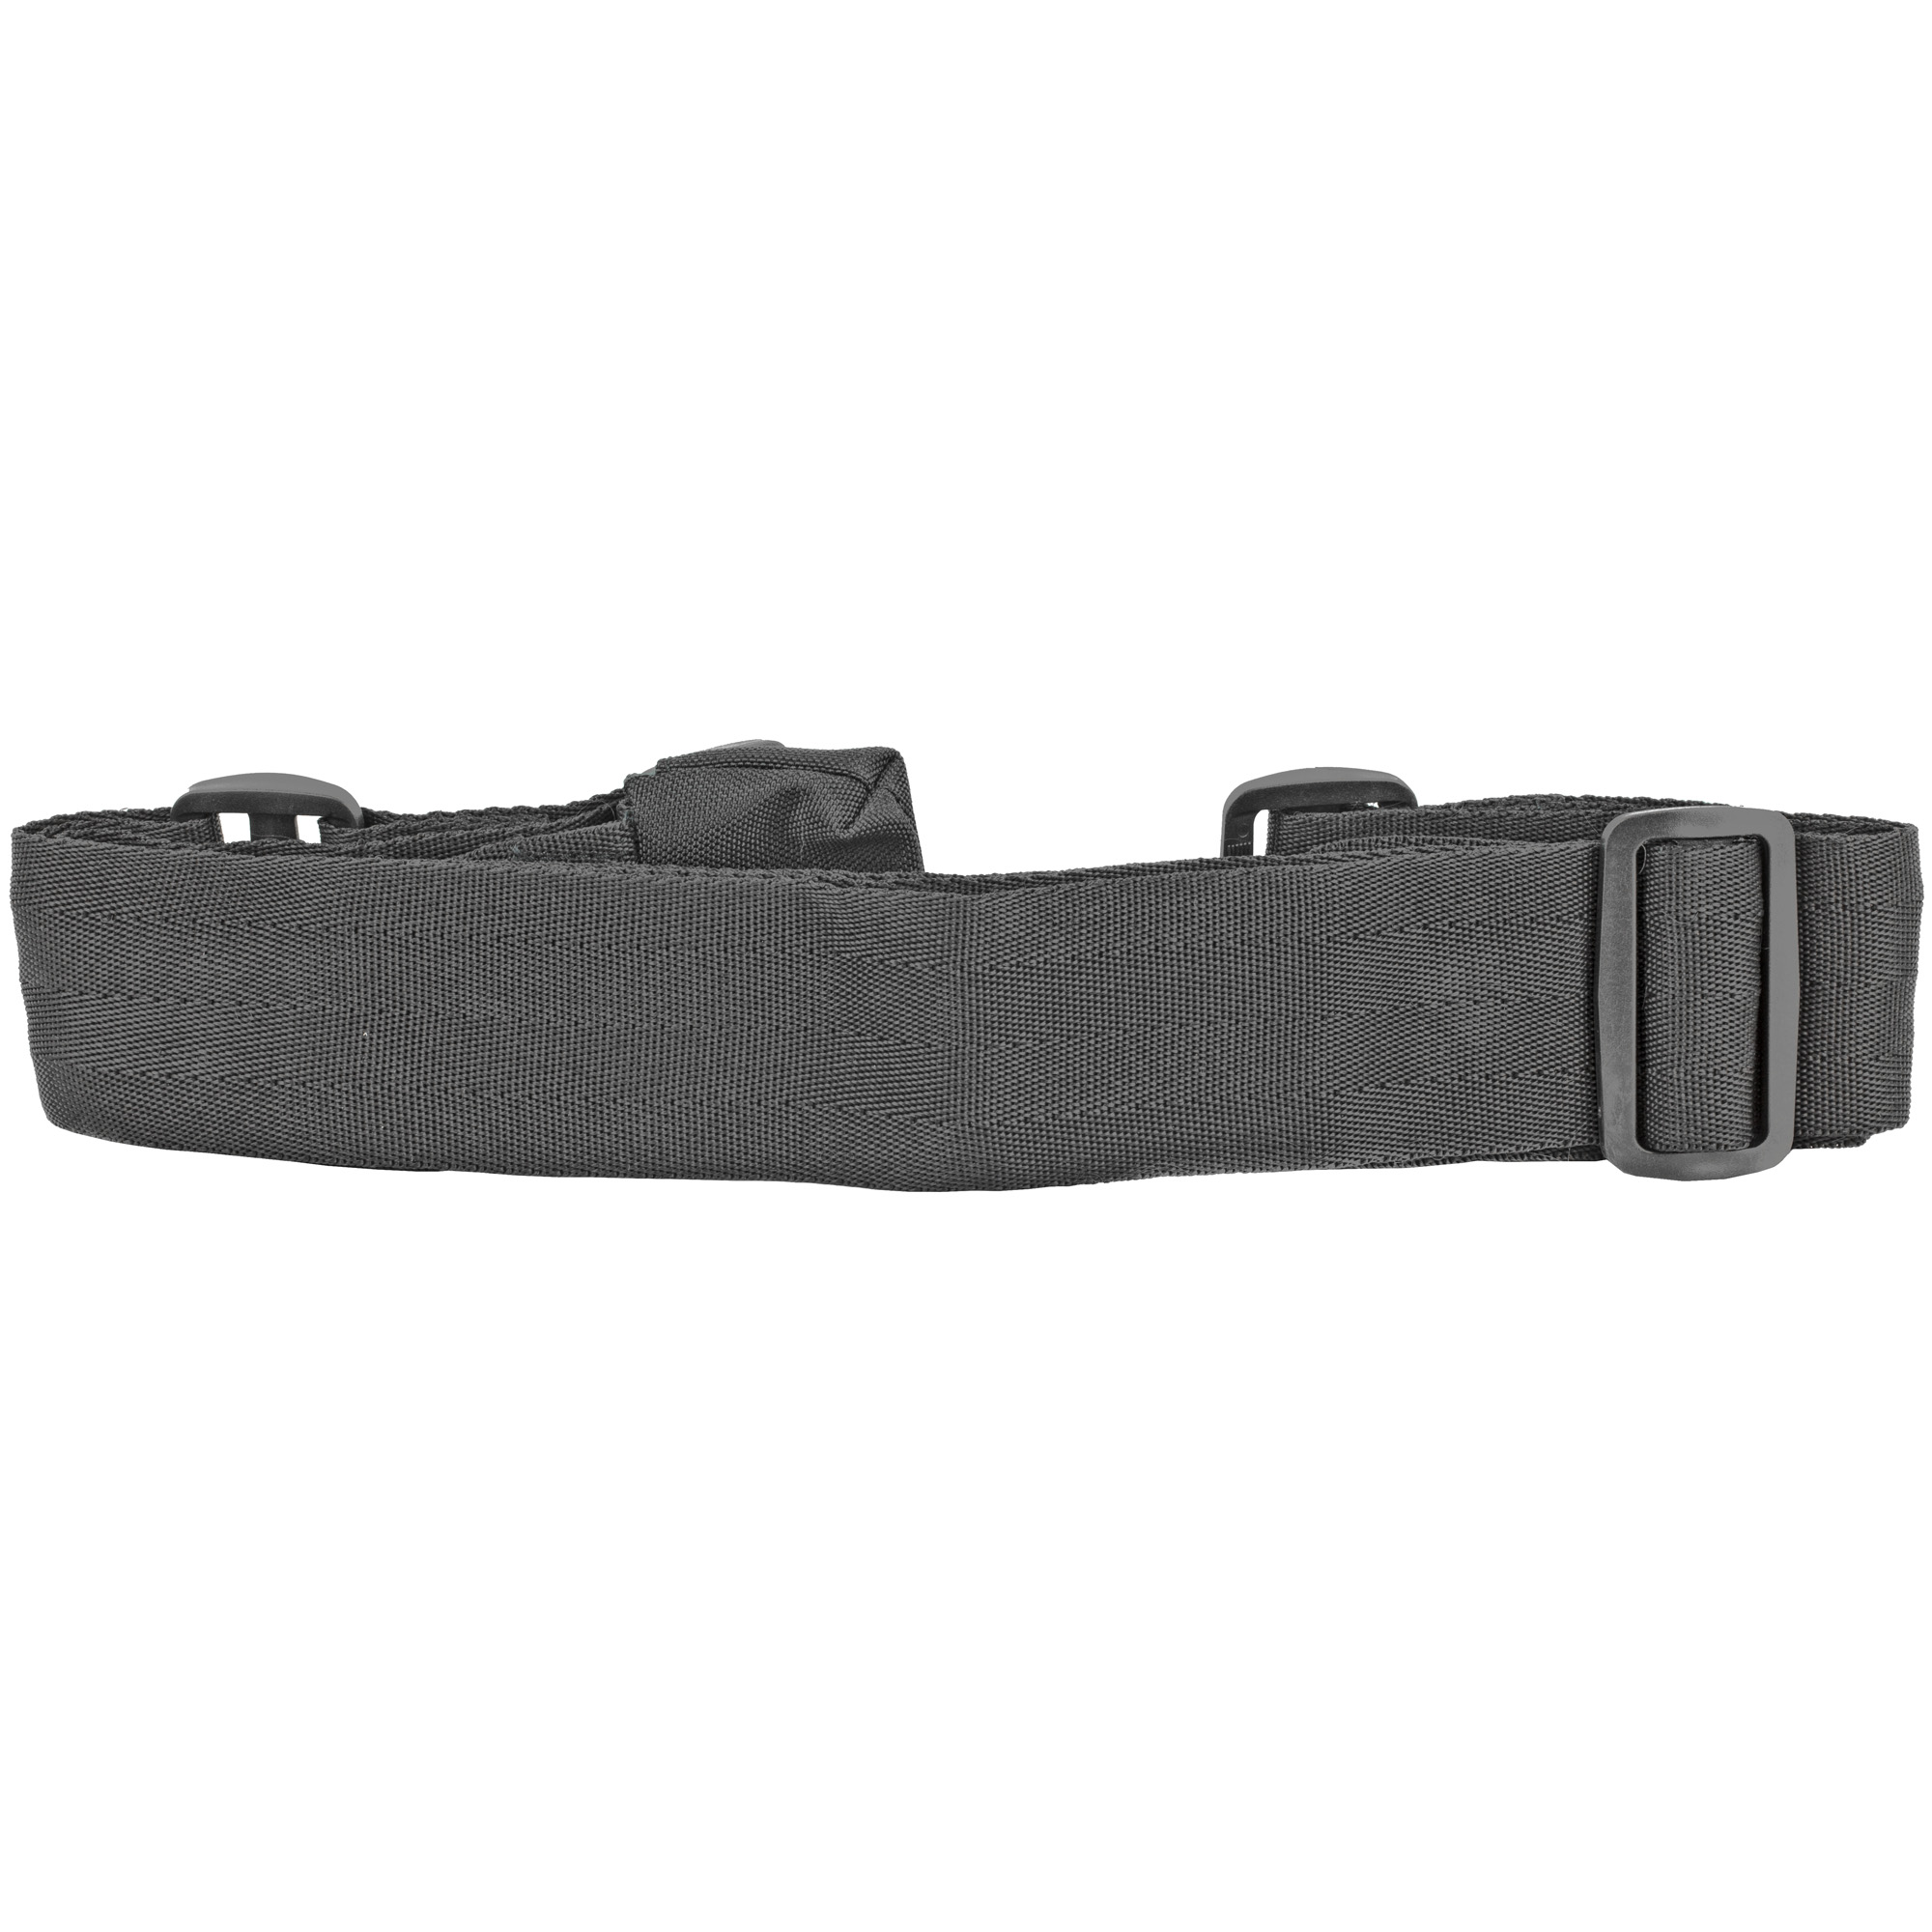 The SL-1 Tactical Rifle Sling is optimal for both routine carrying and for a variety of tactical operational modes.